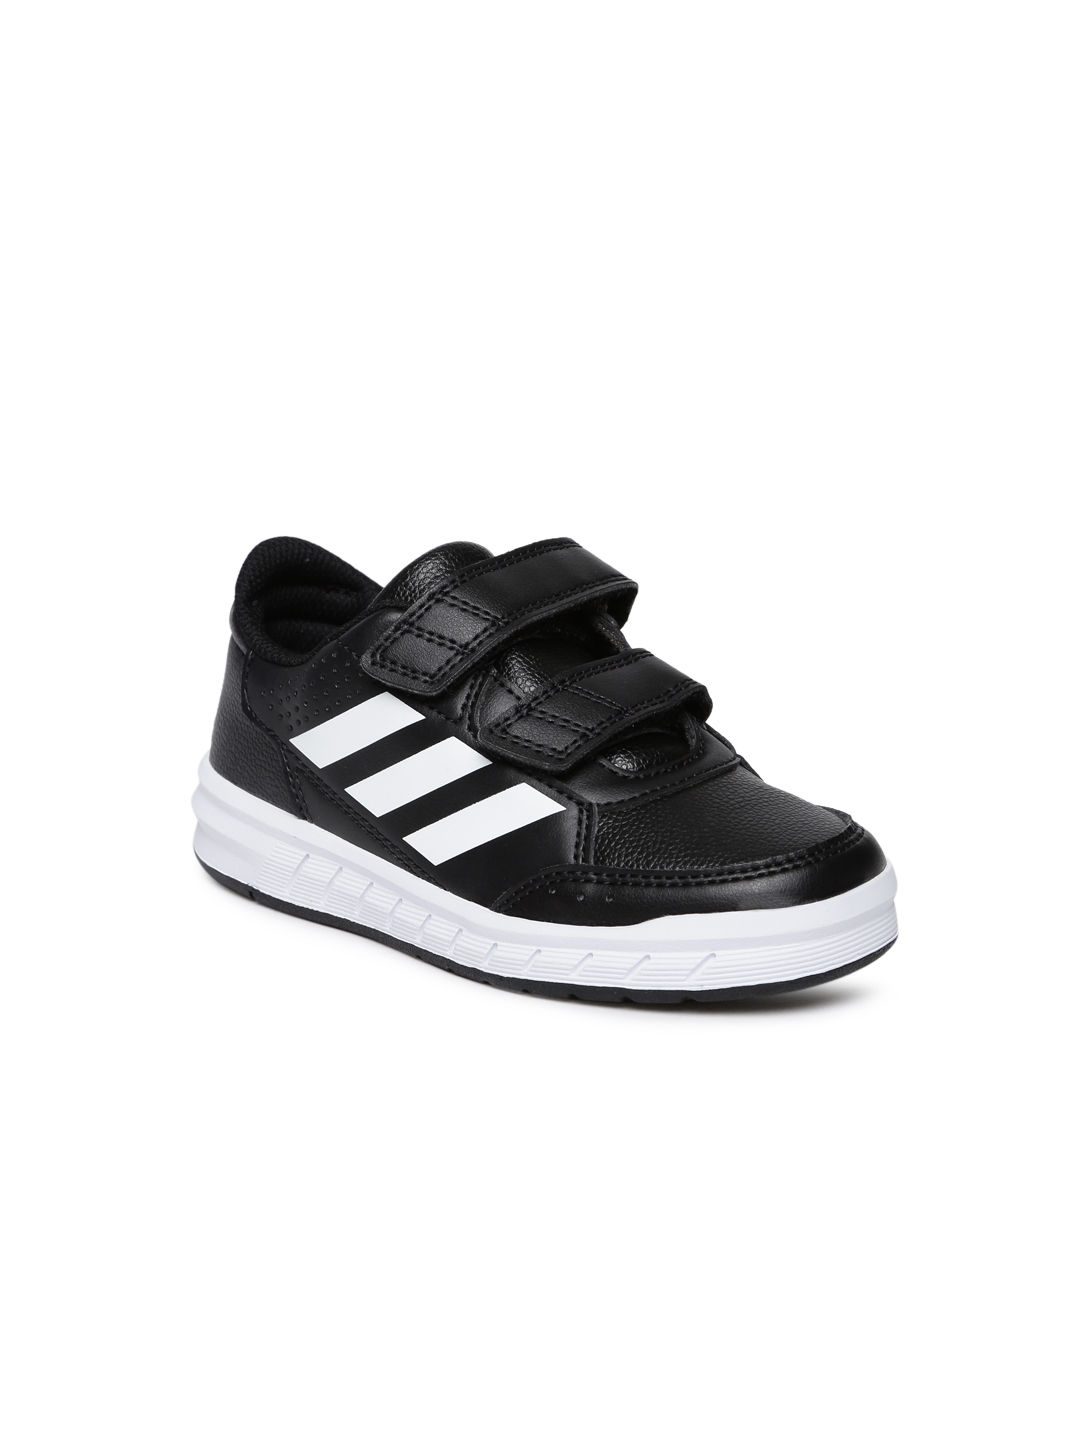 official photos 25dc2 6cfb2 ADIDAS Kids Black ALTASPORT CF K Training Shoes